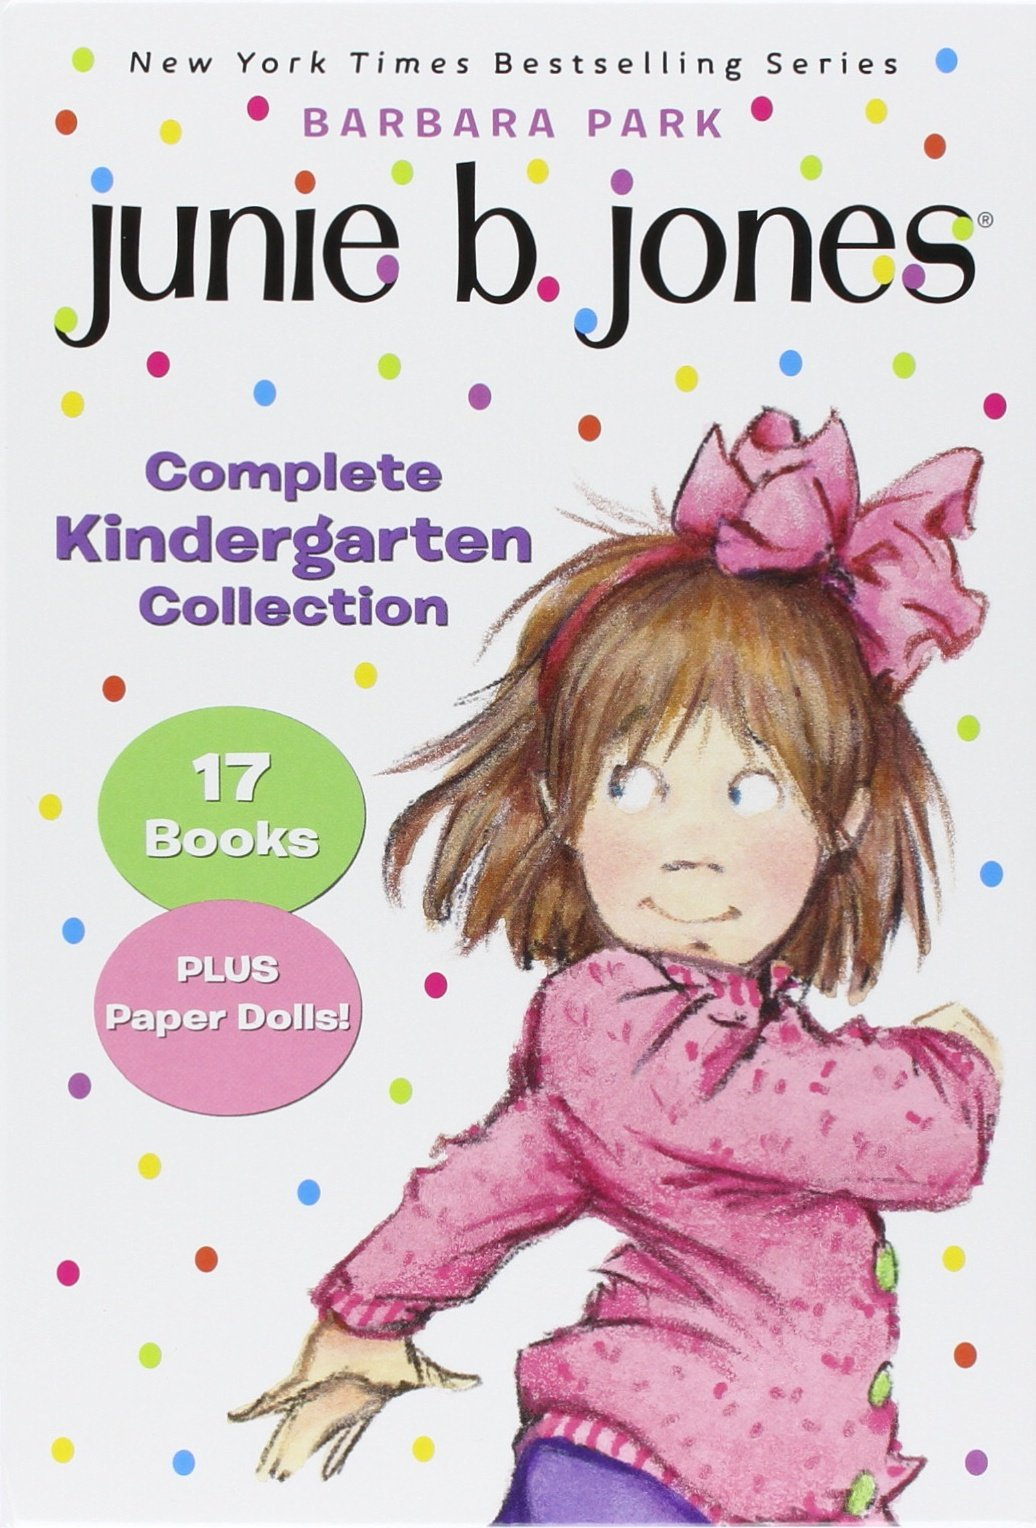 Junie B. Jones Complete Kindergarten Collection: Books 1-17 with paper dolls in boxed set by RHBYR